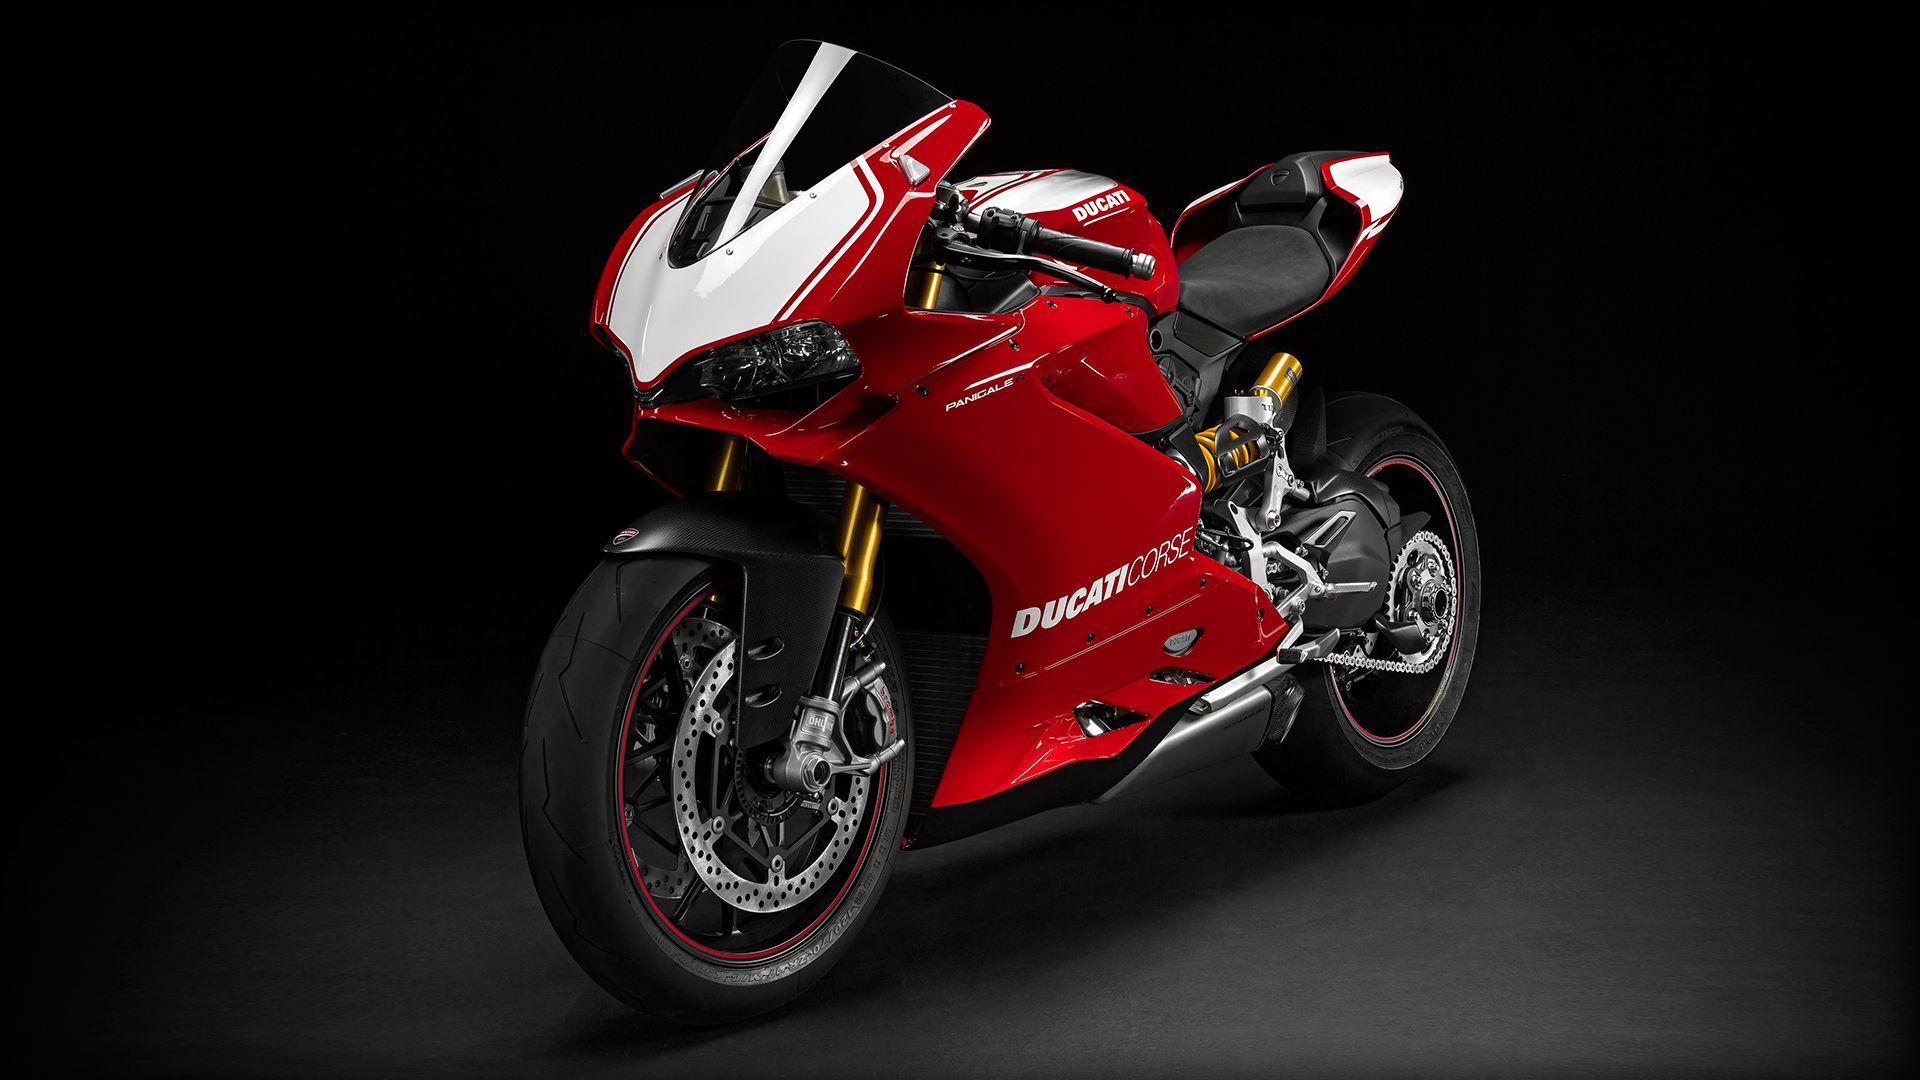 2015 Ducati Panigale R | Panigale R - Front Left Angle